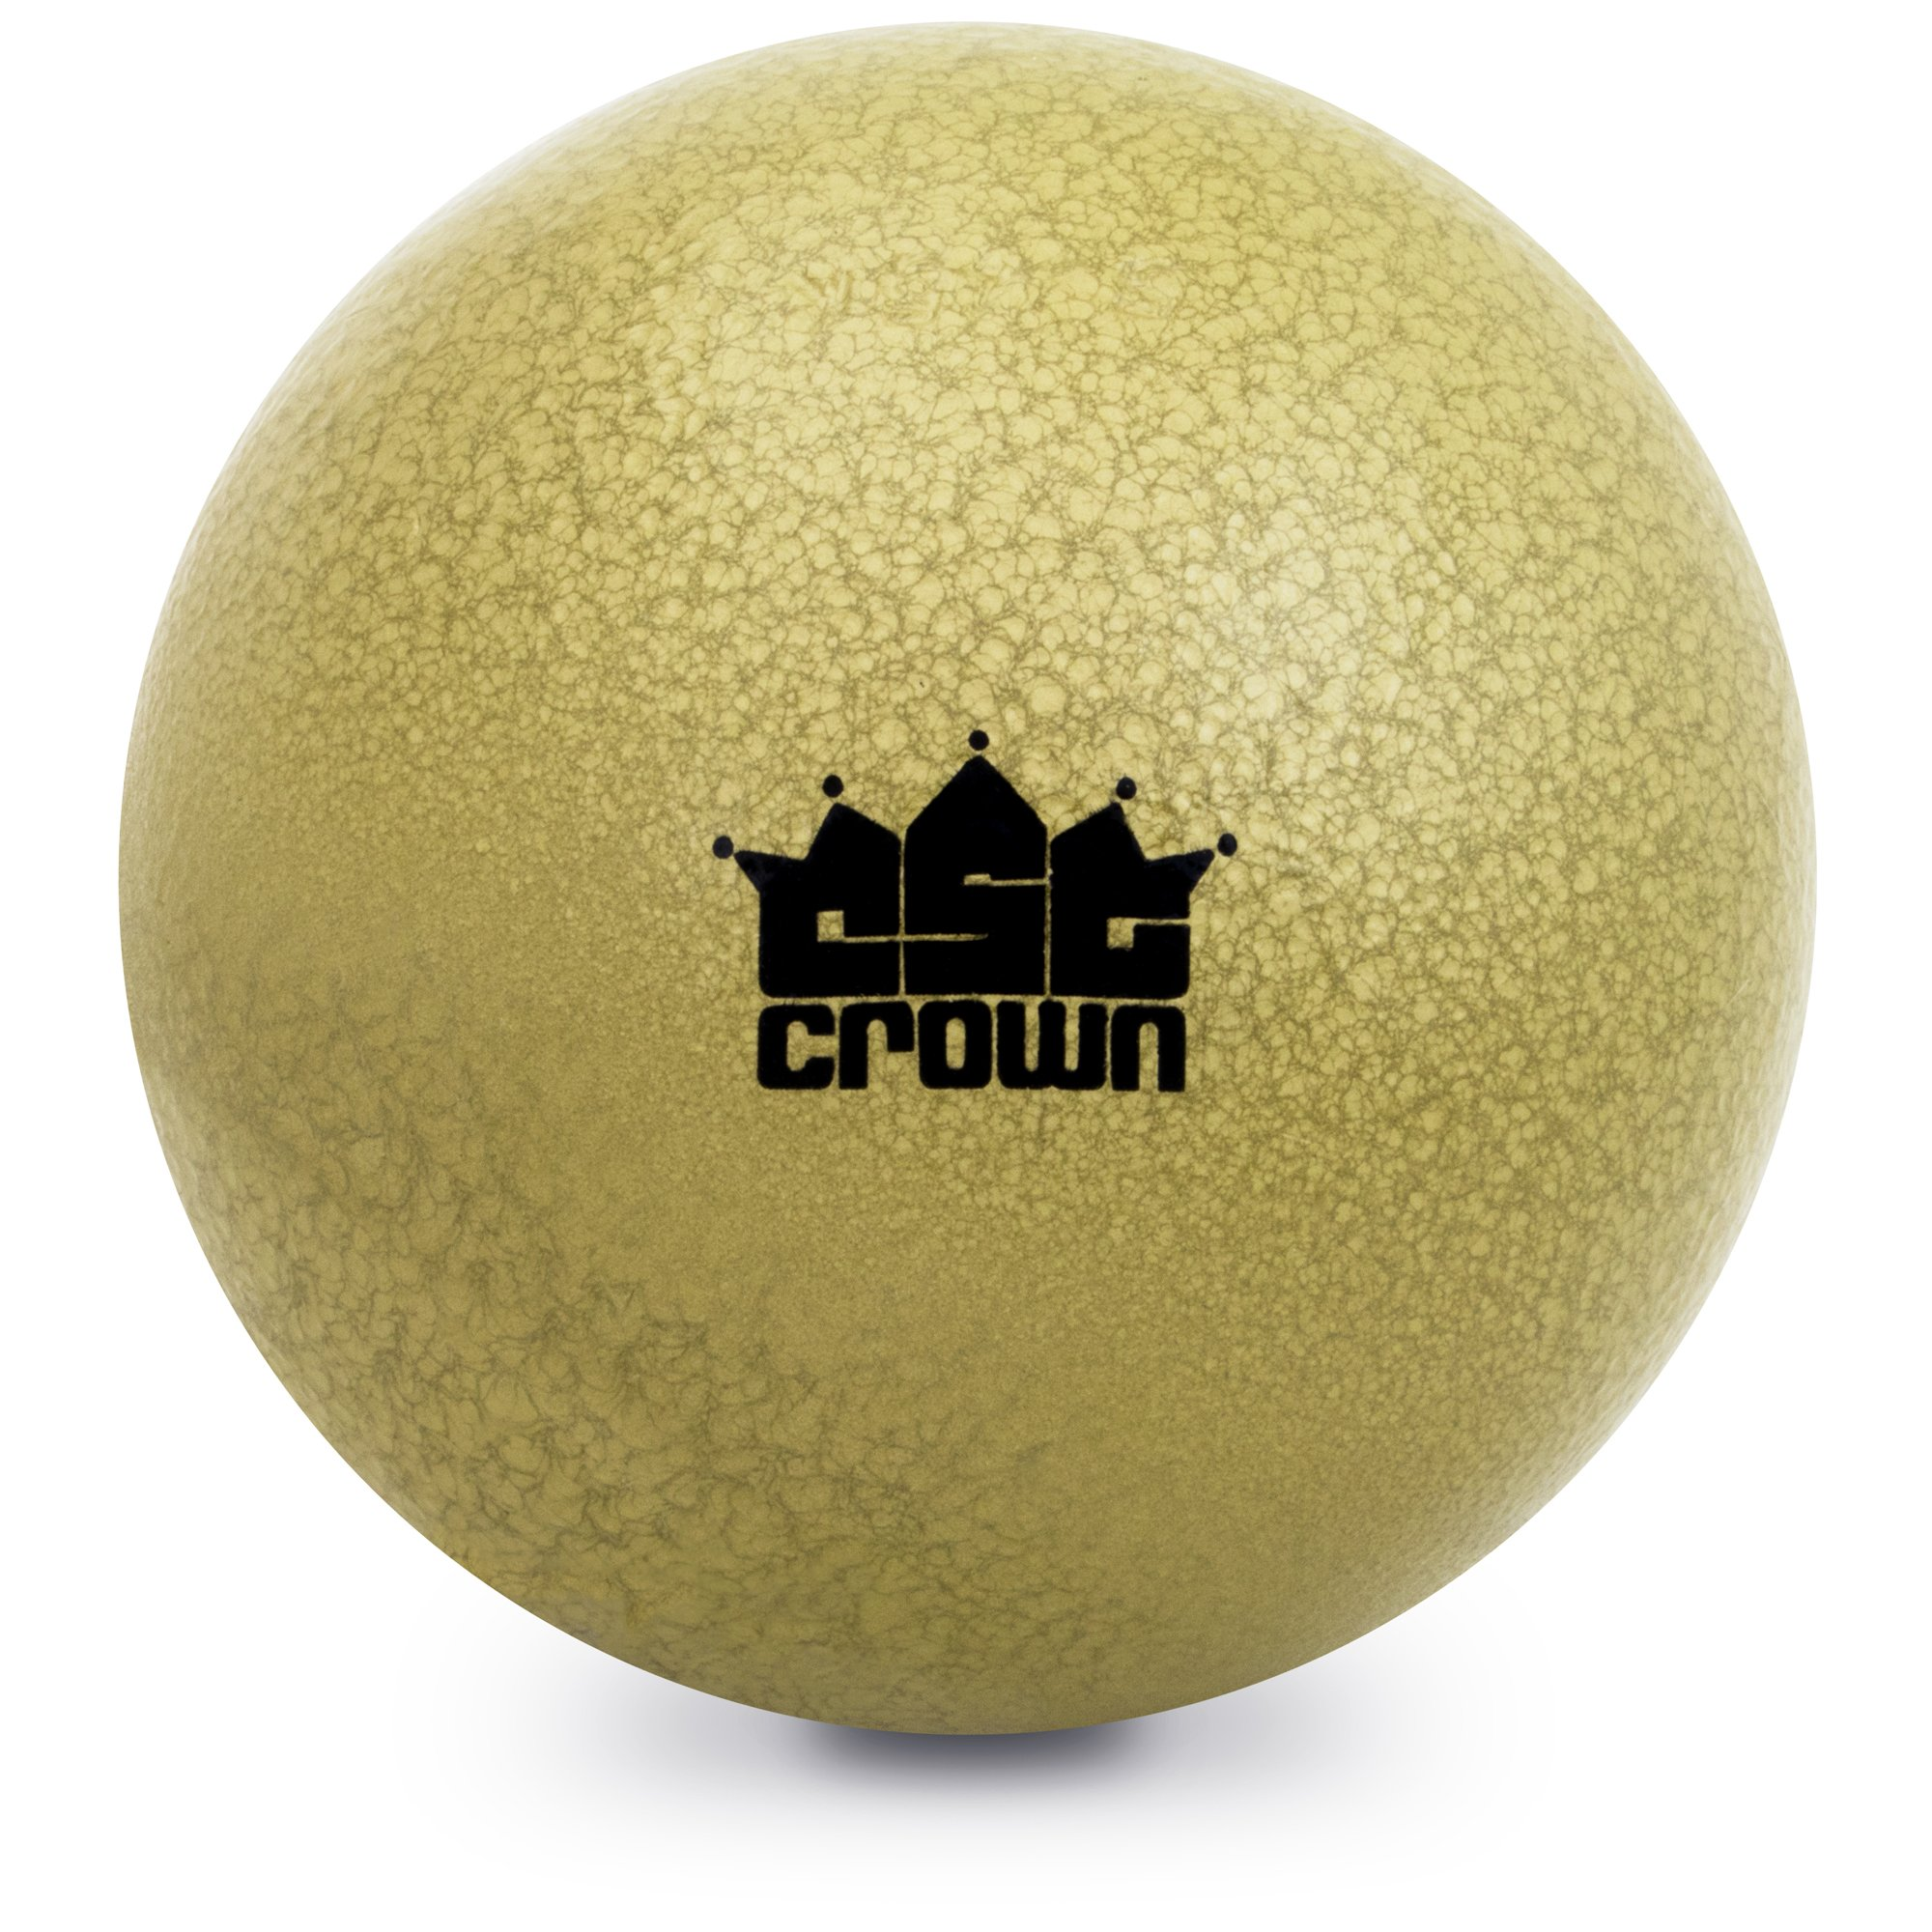 5.45kg (12lbs) Shot Put, Cast Iron Weight Shot Ball – Great for Outdoor Track & Field Competitions, Practice, & Training by Crown Sporting Goods